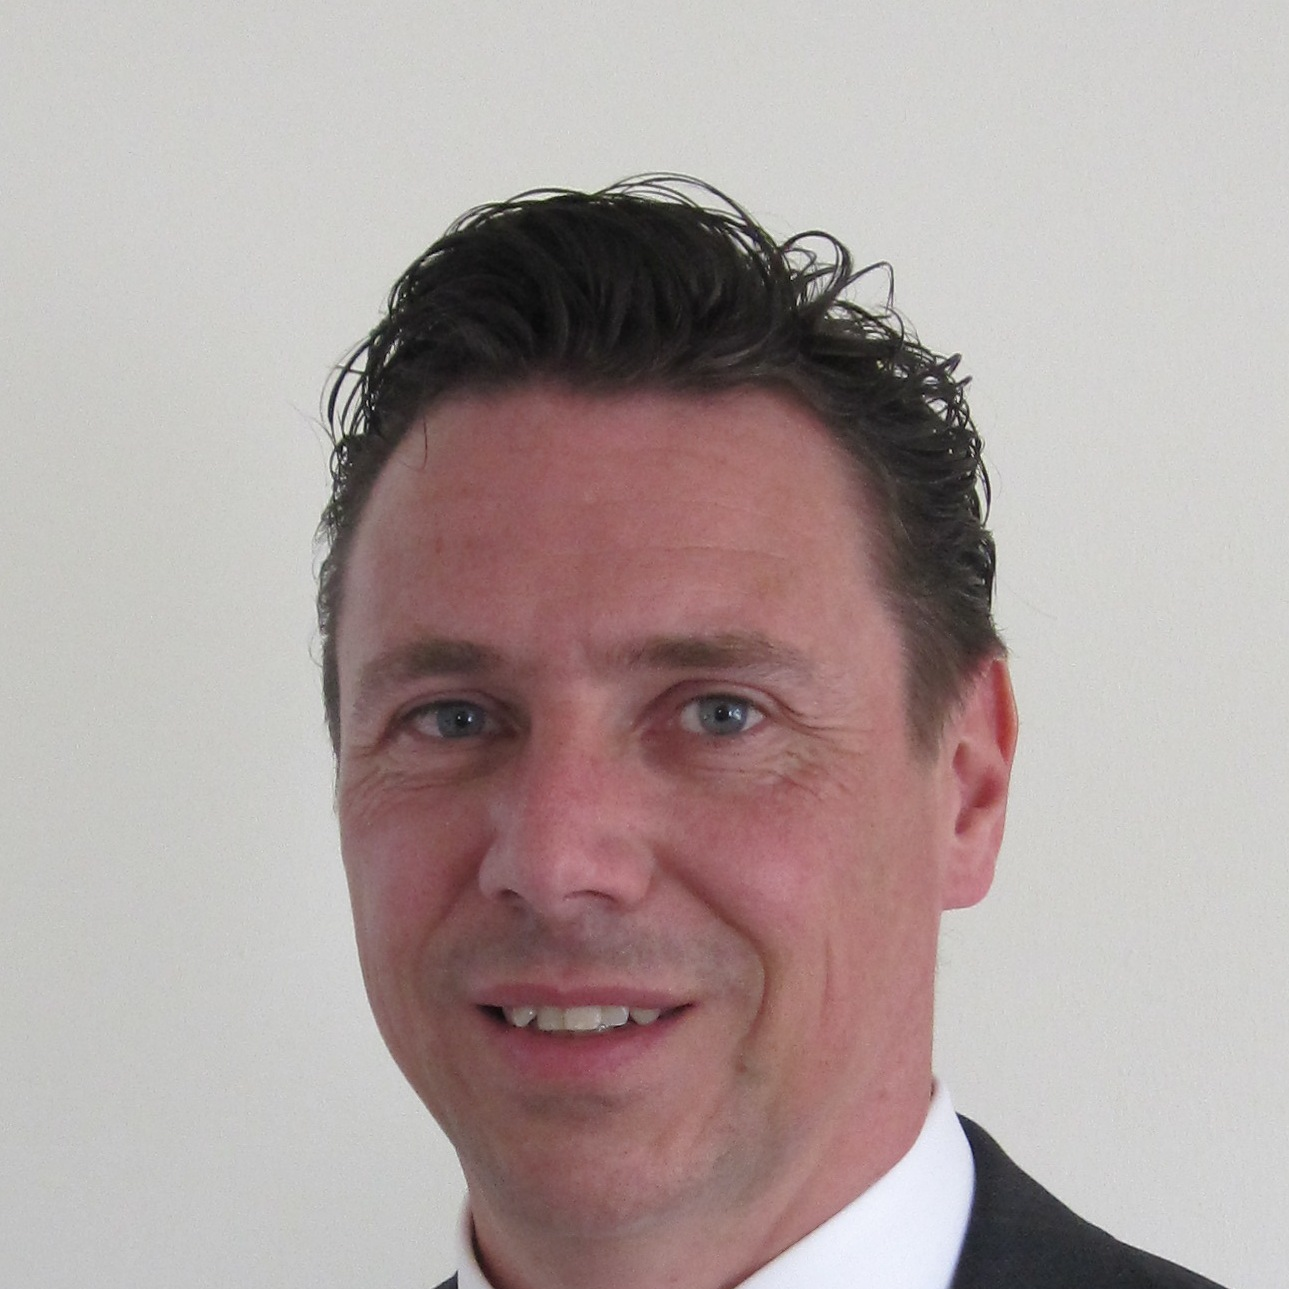 Ralph Pesgens, Global Head of Competence Center Amusement and Leisure Industry at TUV NORD